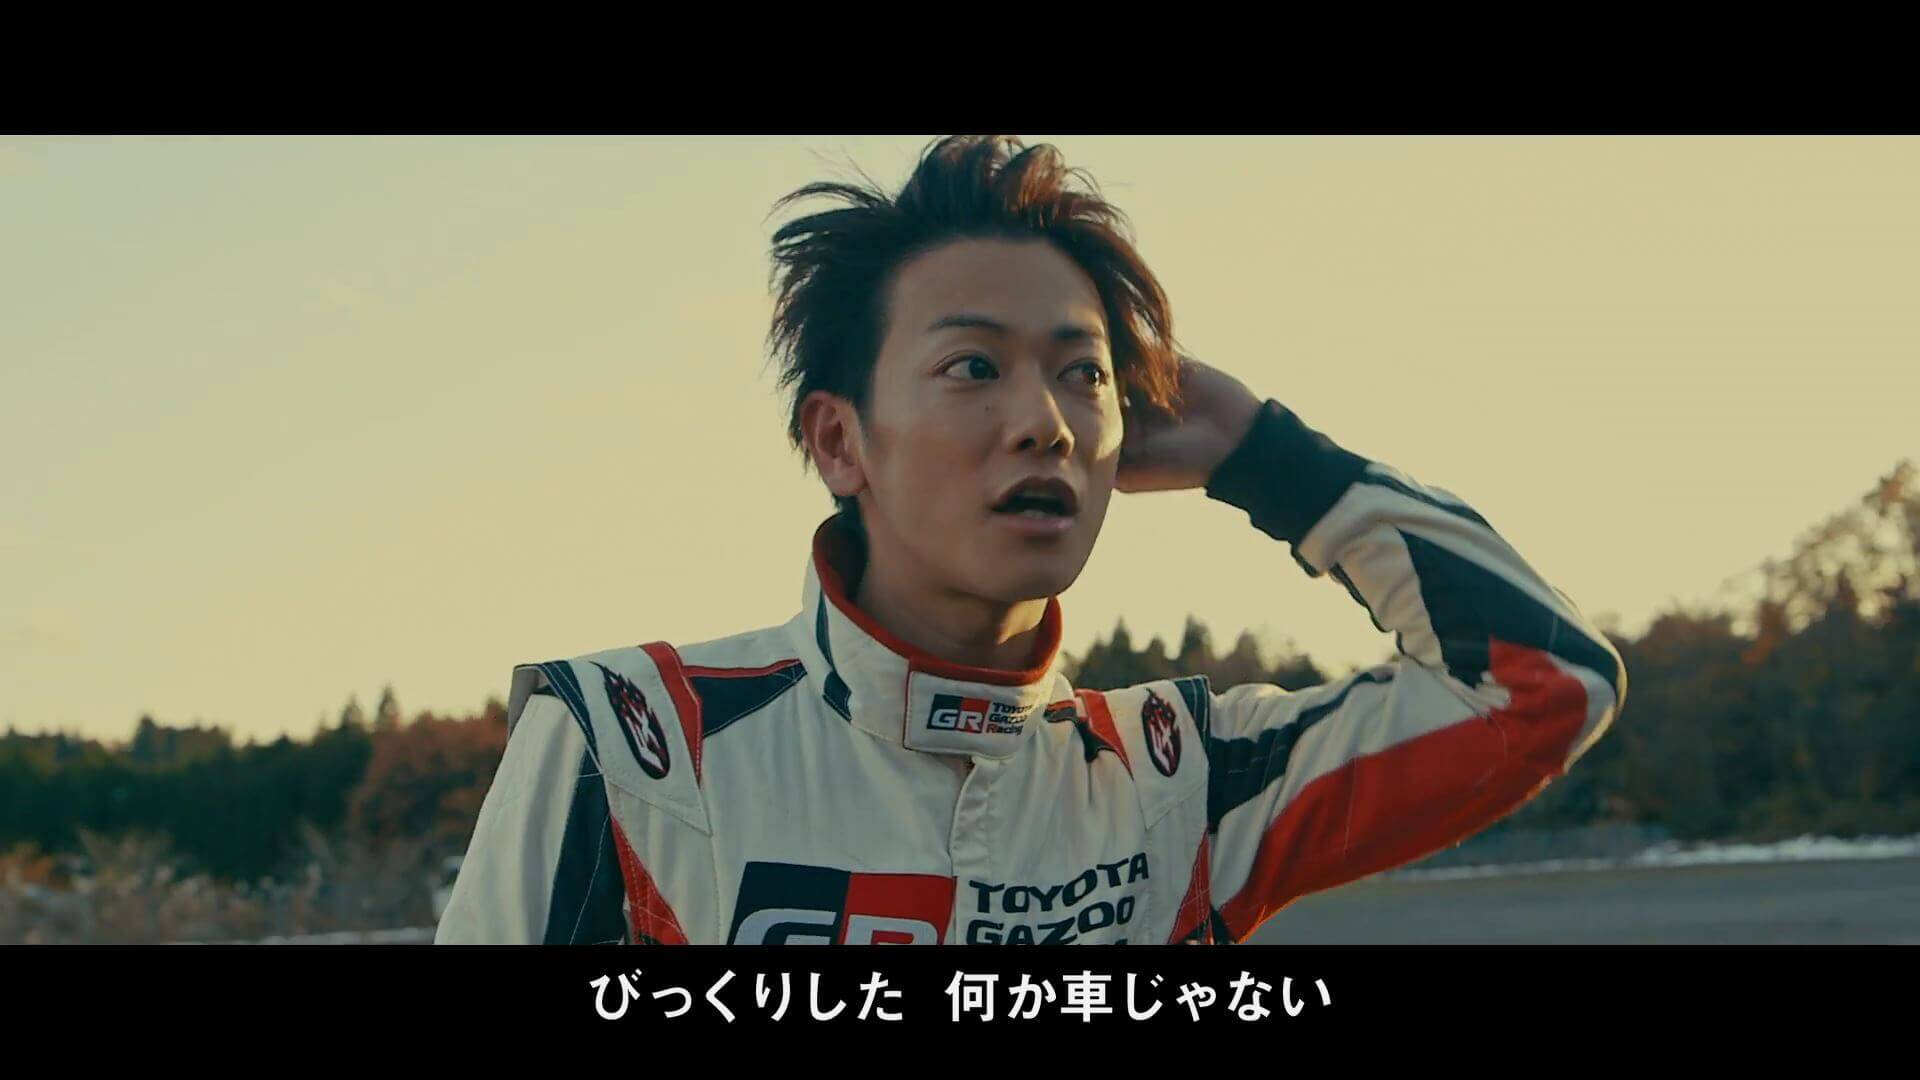 TOYOTA GAZOO Racing TAKERU SATOH MEETS GAZOO MORIZO mp4 20170712 101657 898